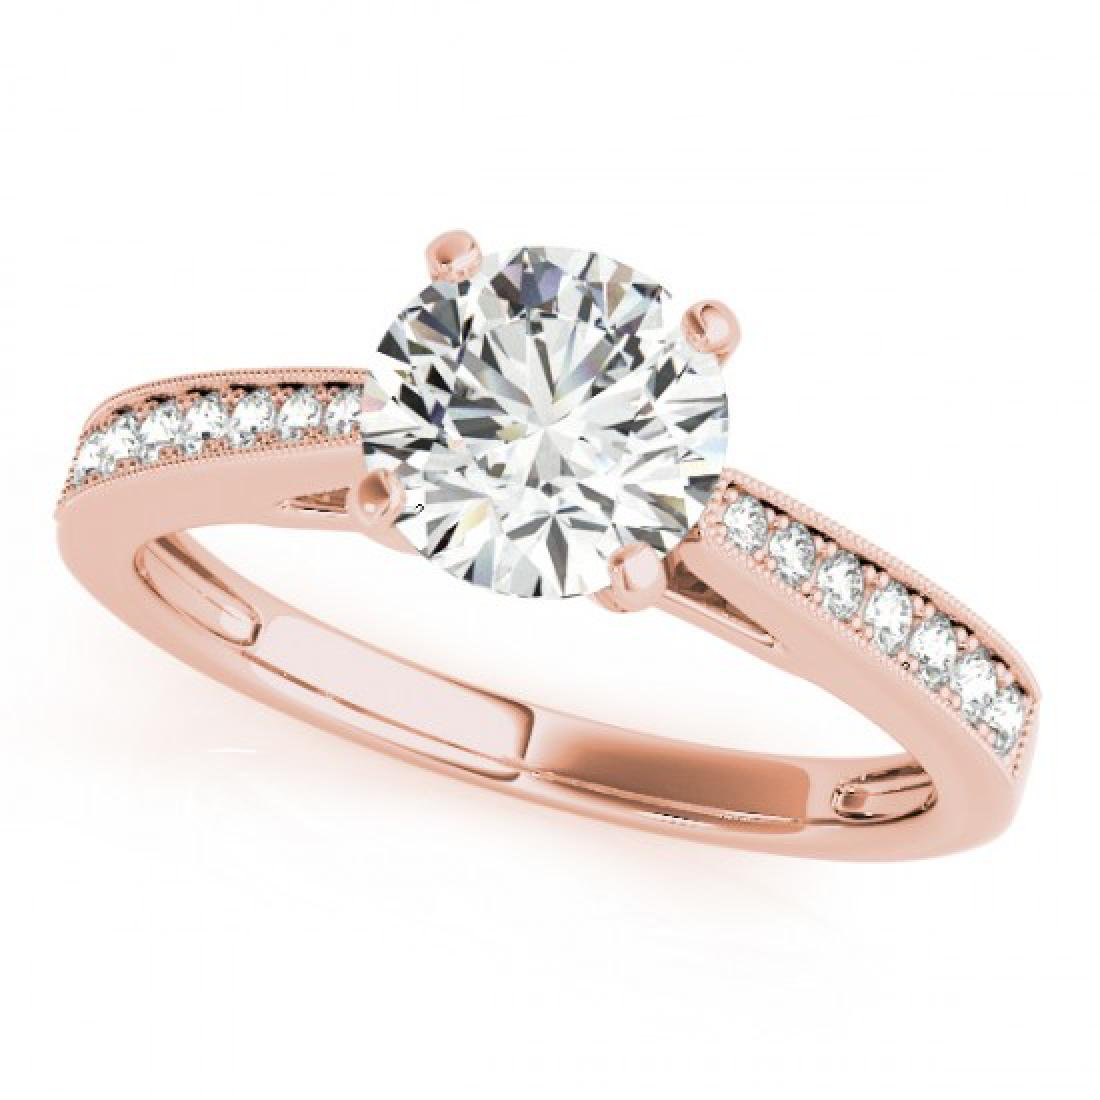 0.75 CTW Certified VS/SI Diamond Solitaire Ring 14K